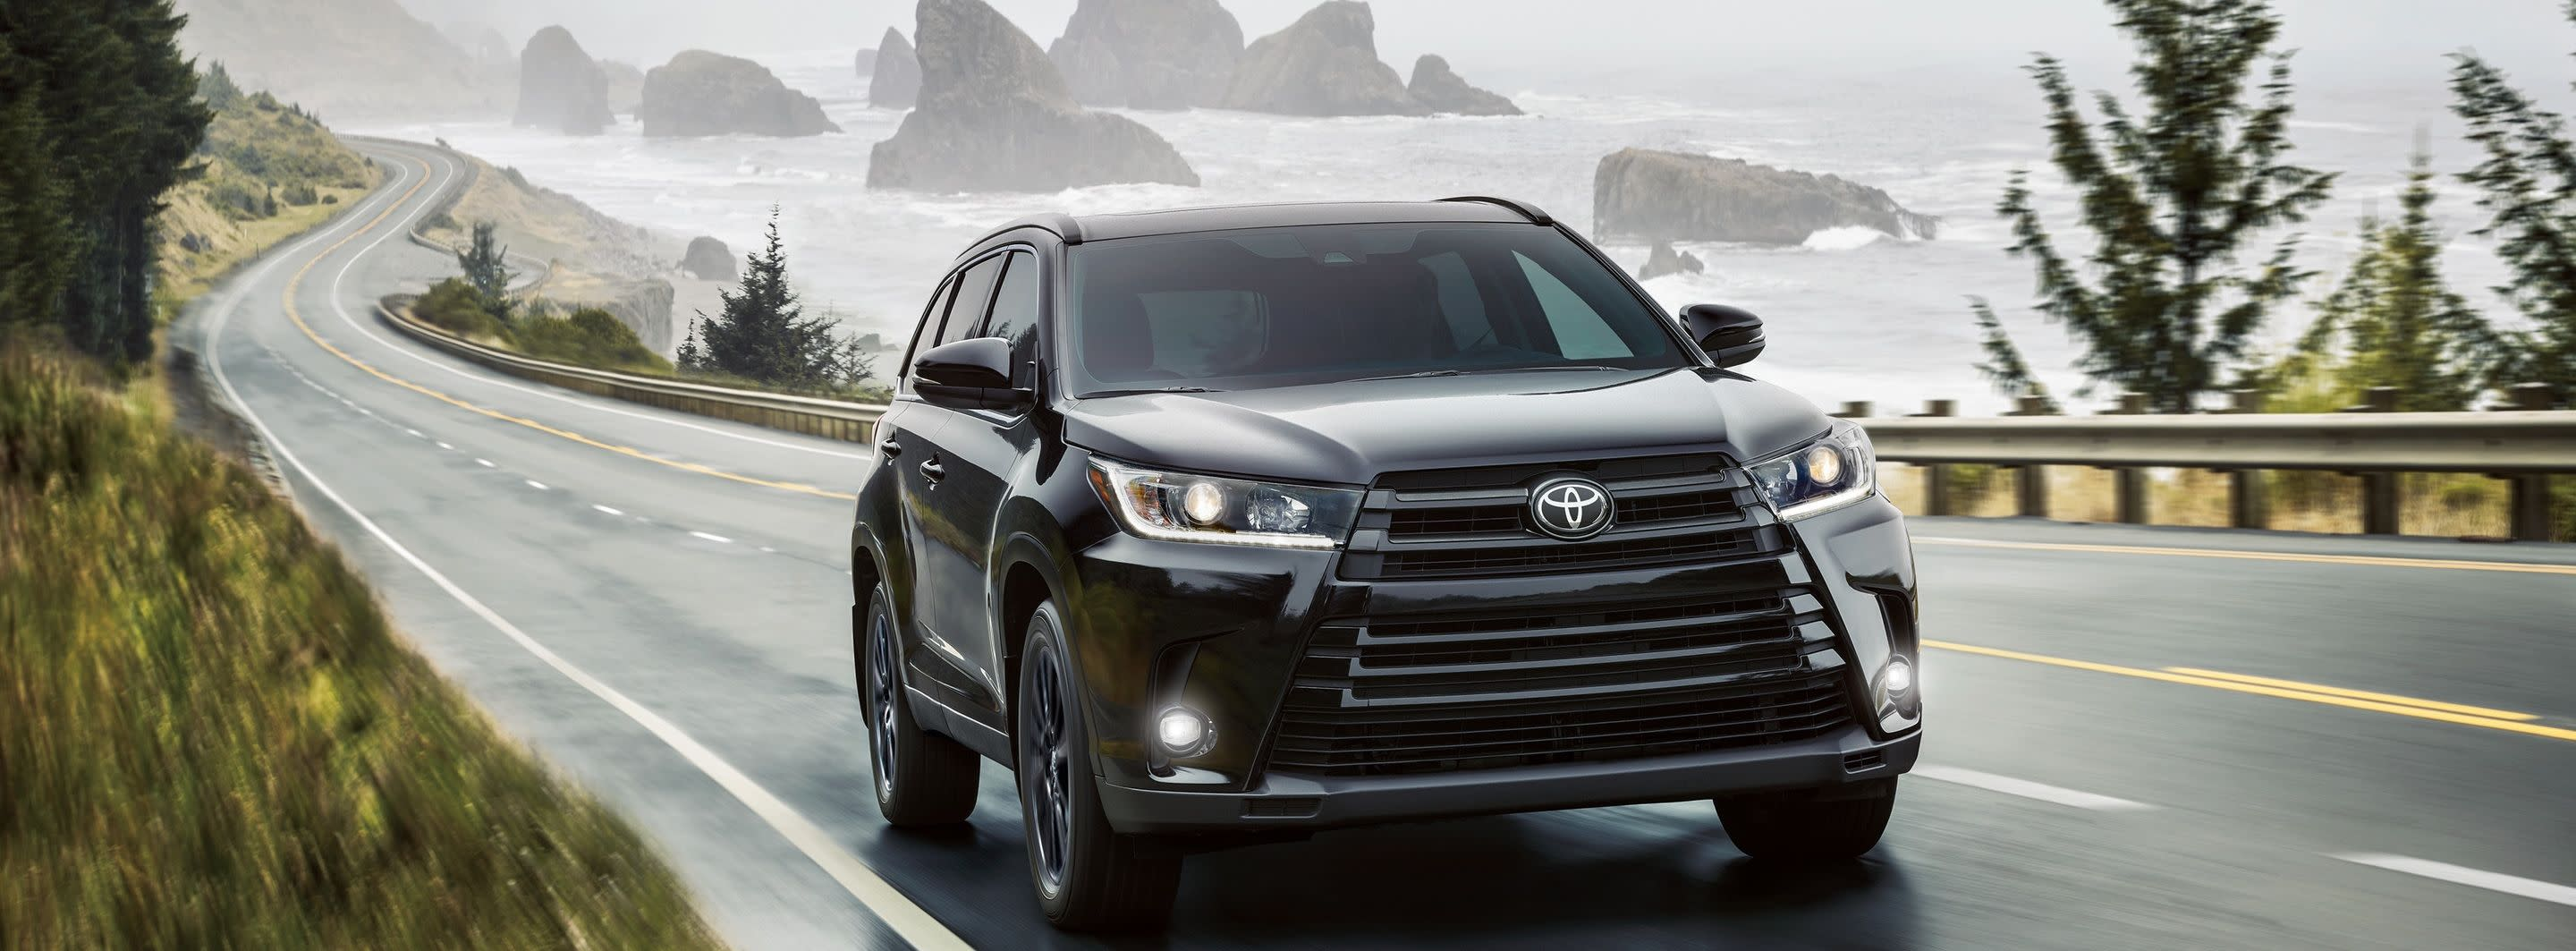 2019 Toyota Highlander vs 2019 Ford Escape in New Castle, DE